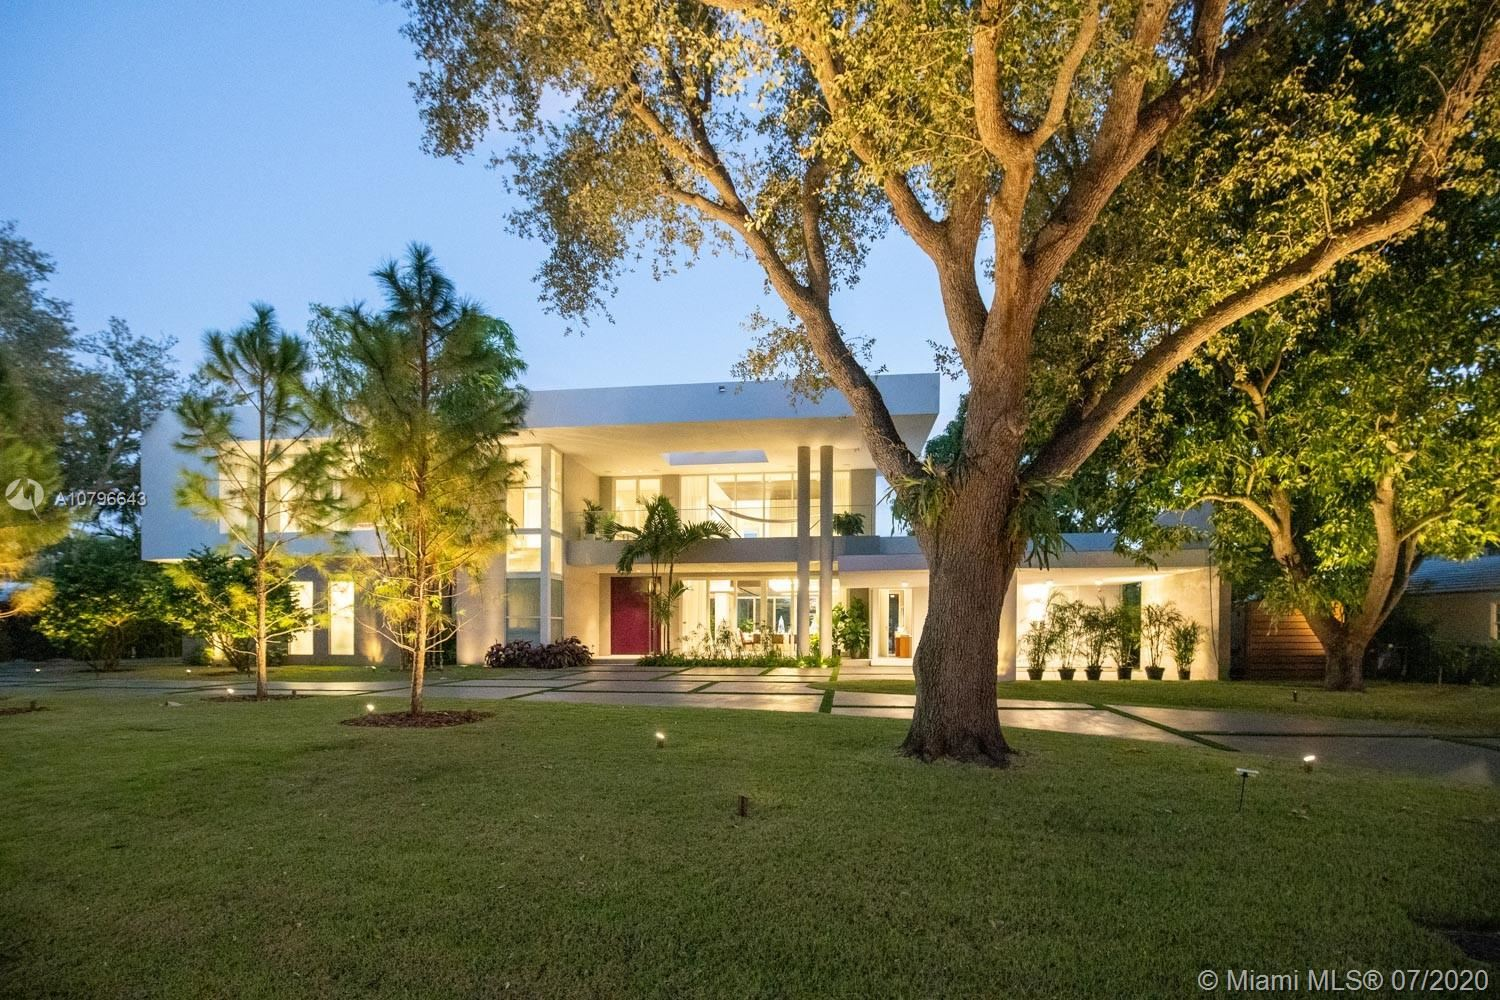 Photo 40 of Listing MLS a10796643 in 4731 Lake Rd Miami FL 33137